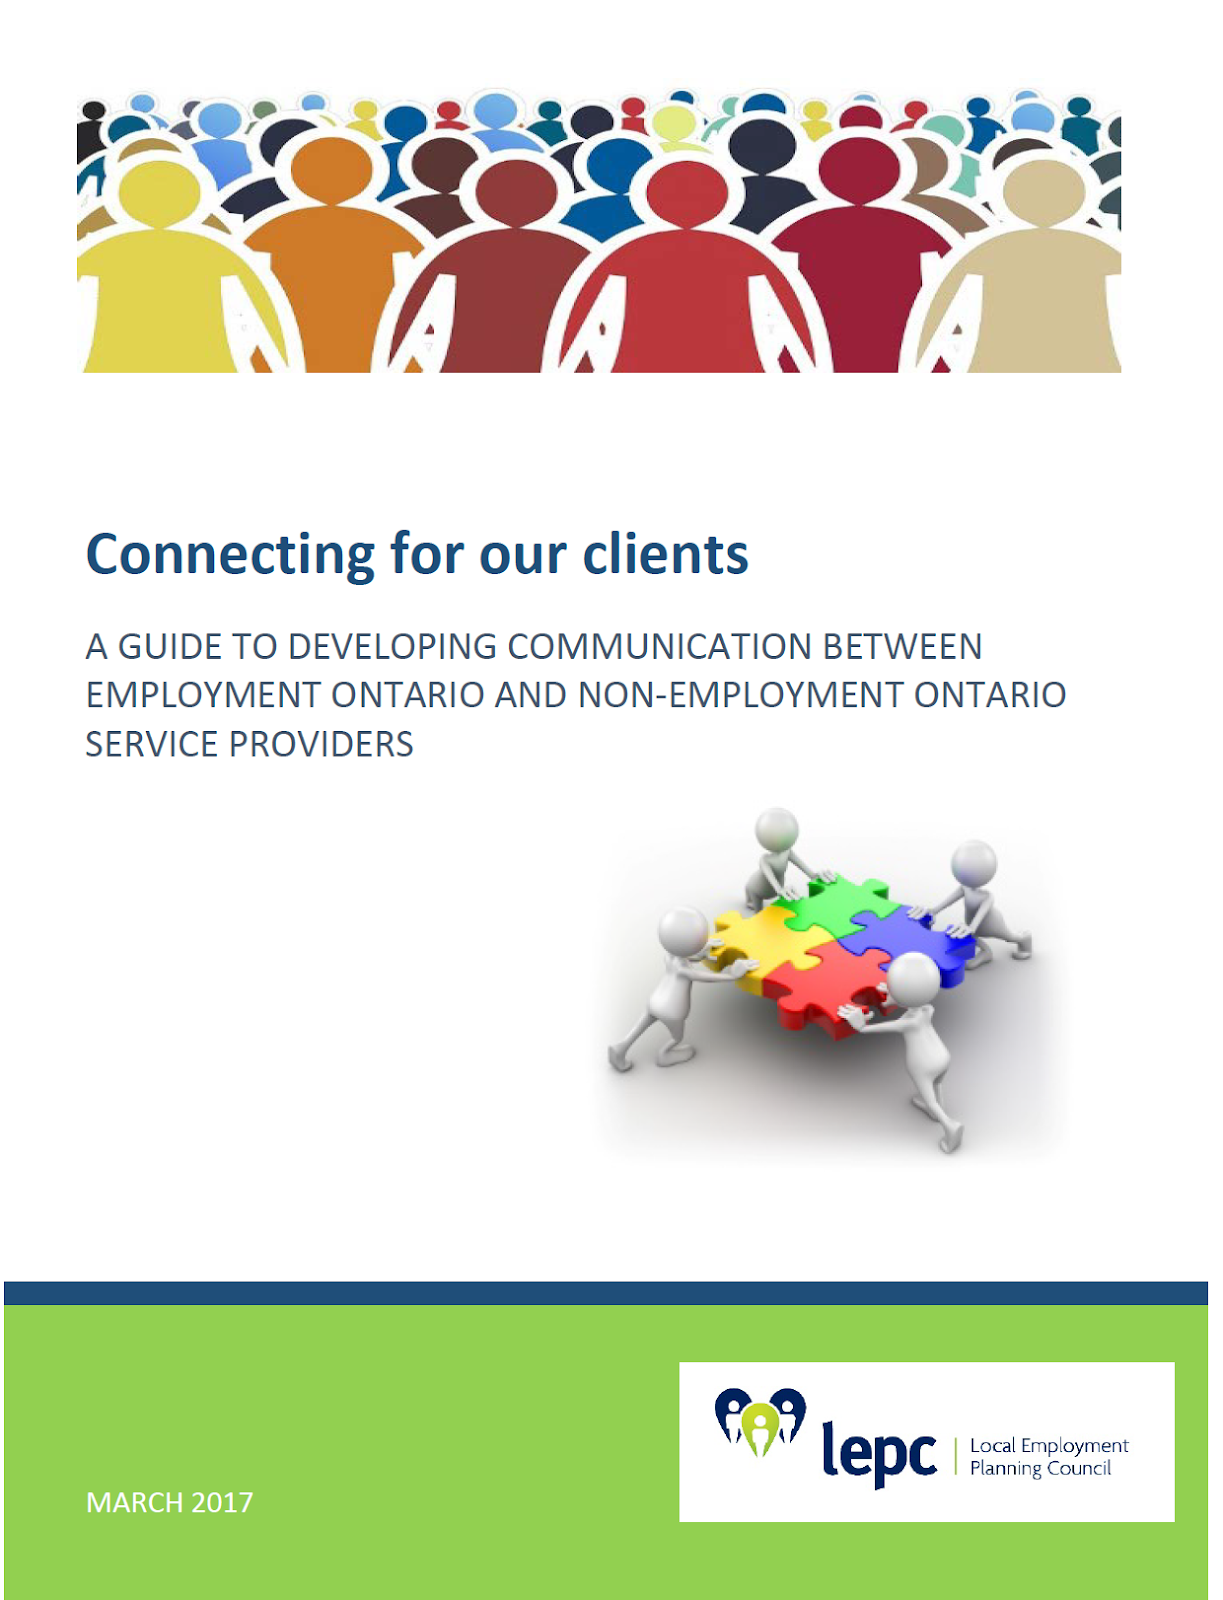 Connecting for our Clients